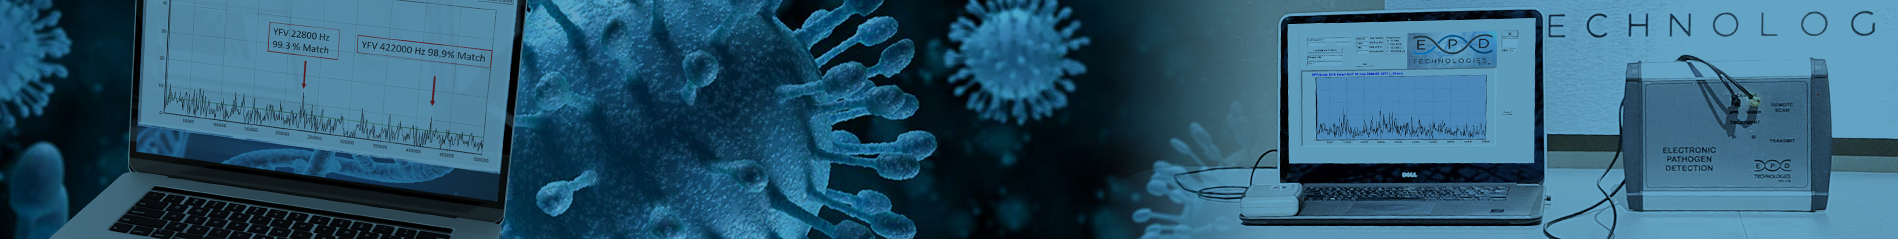 We specialize in Electronic Pathogen Detection